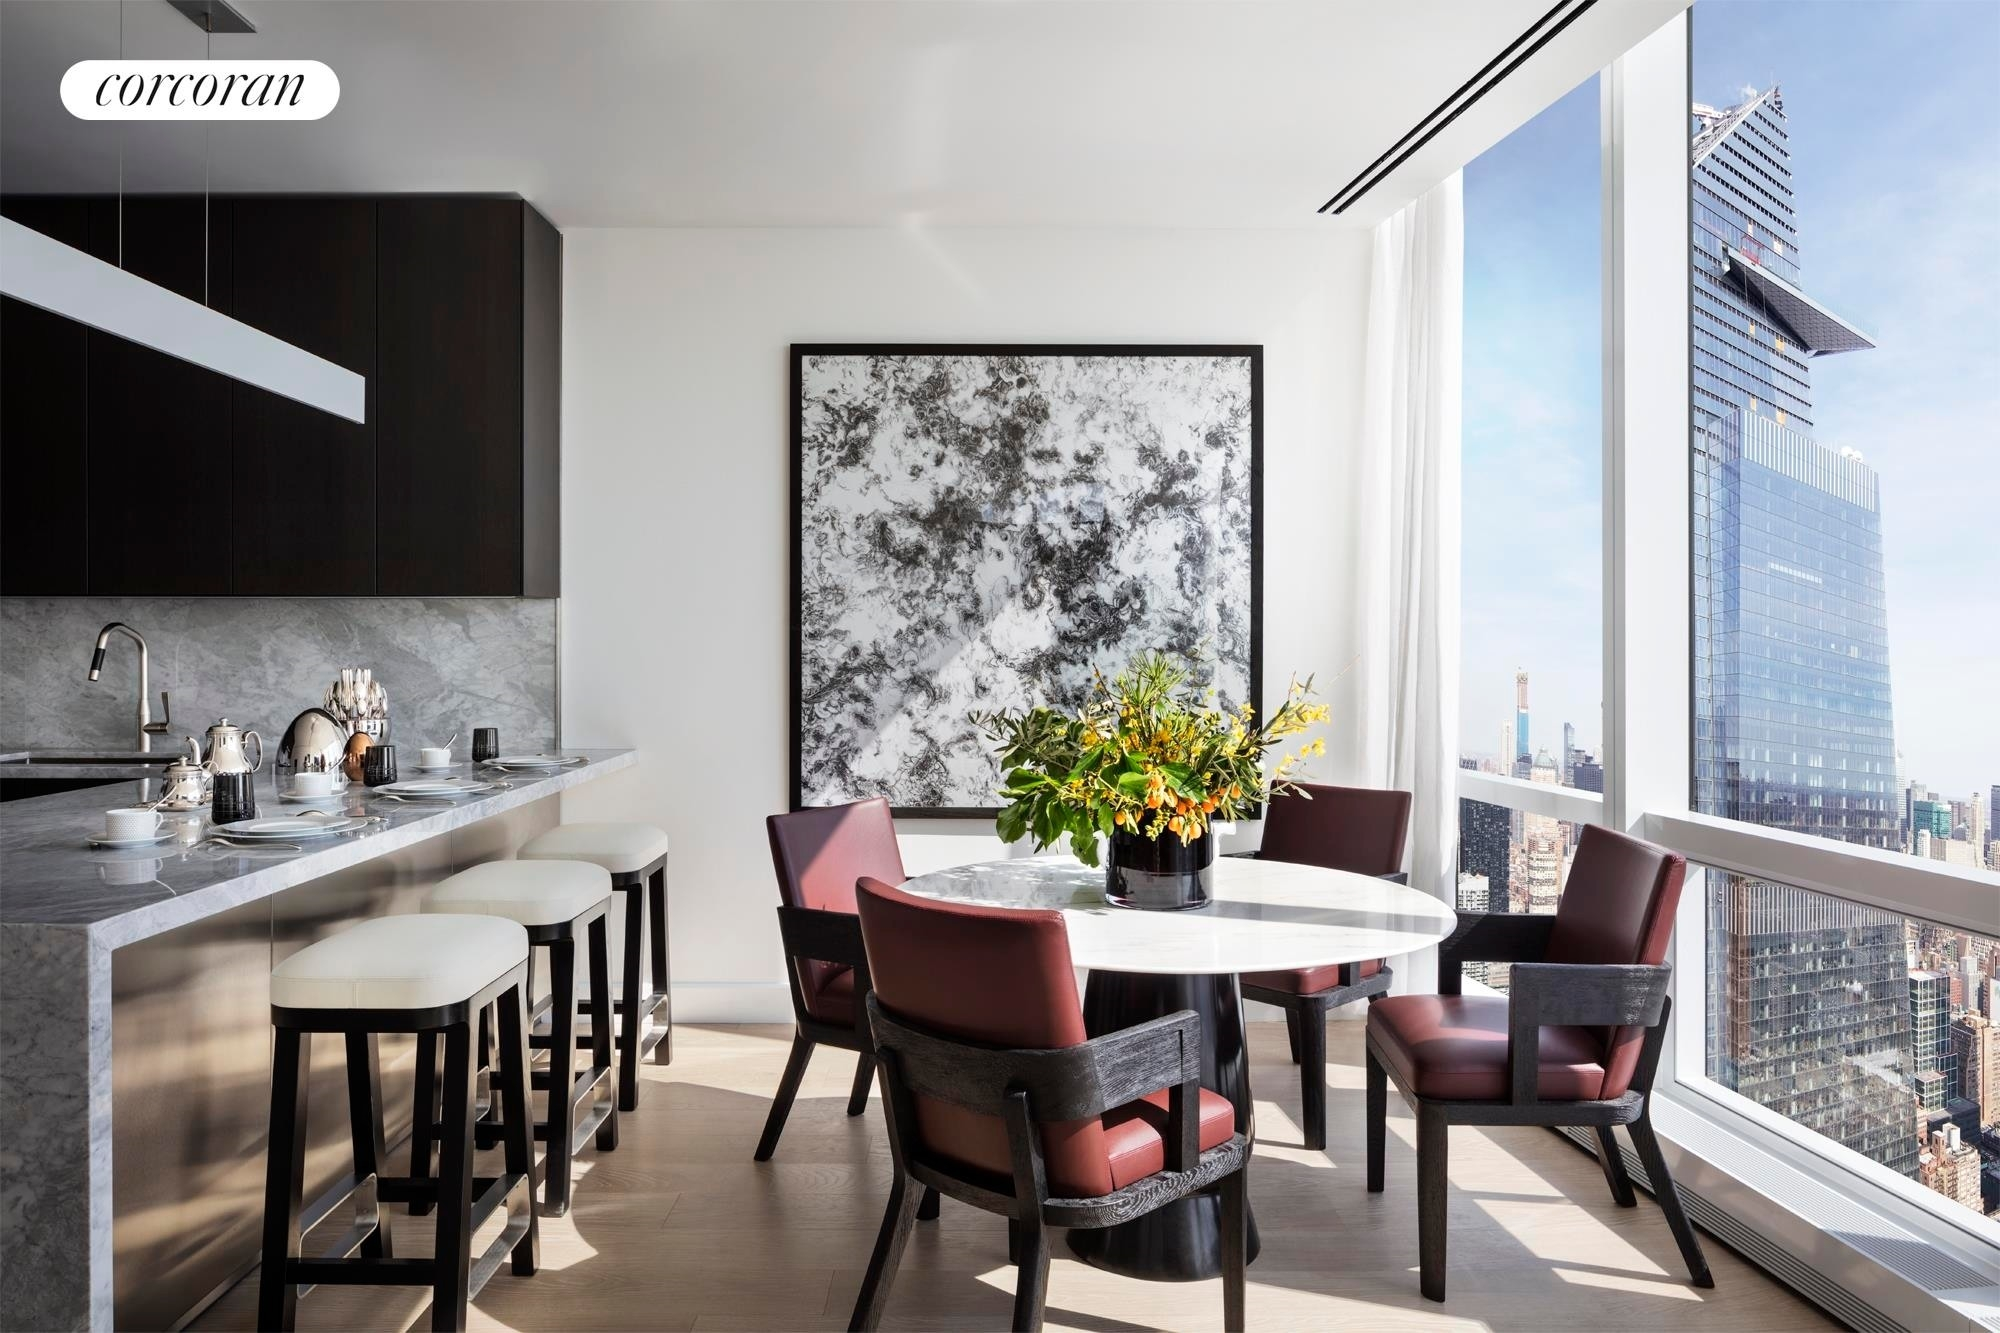 6. Condominiums for Sale at 15 Hudson Yards, 75B Hudson Yards, New York, NY 10001